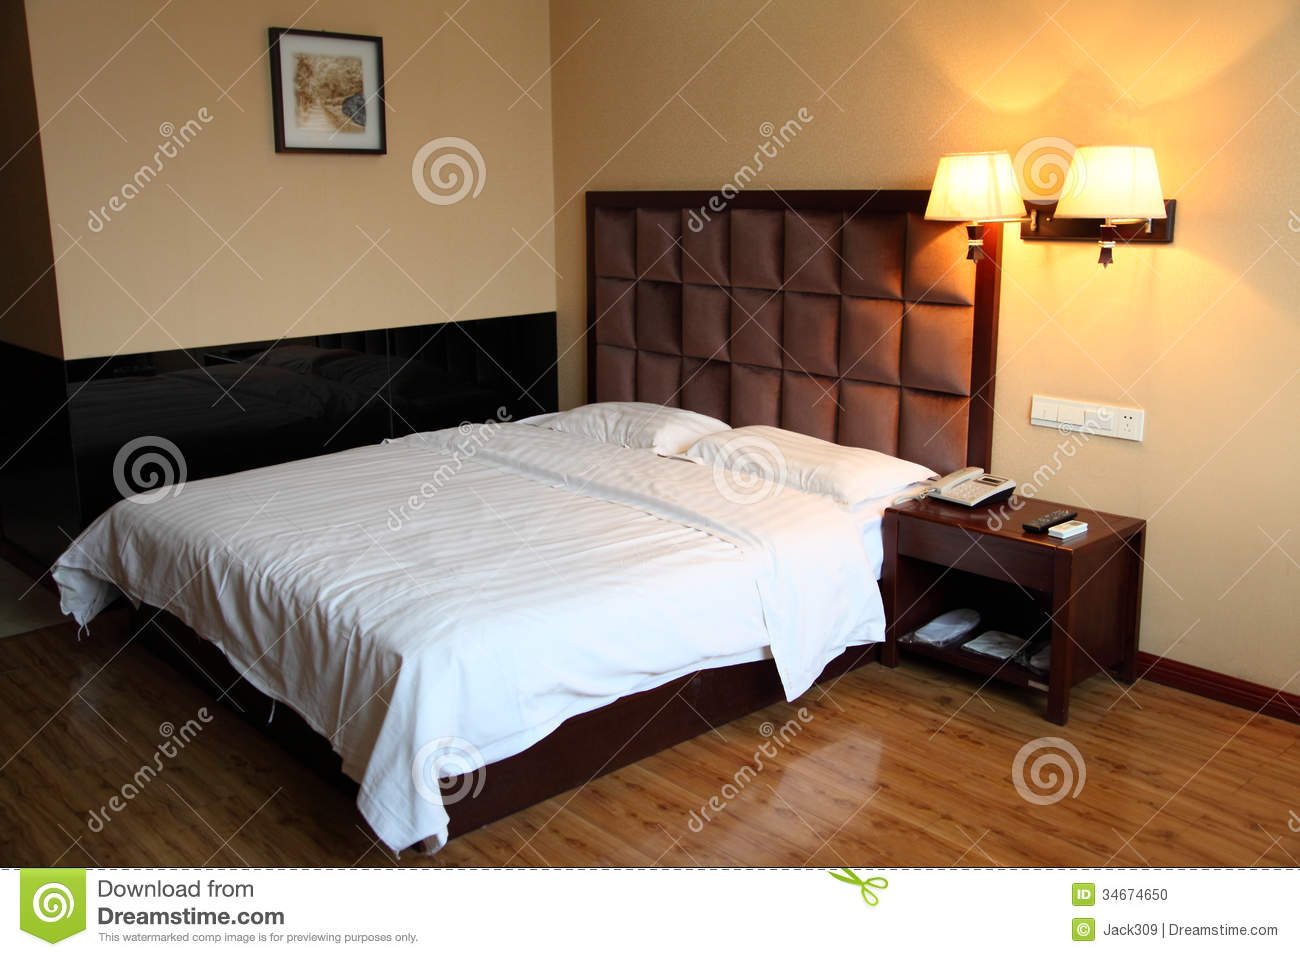 Hotel bed room stock photo image 34674650 - Image bed room ...